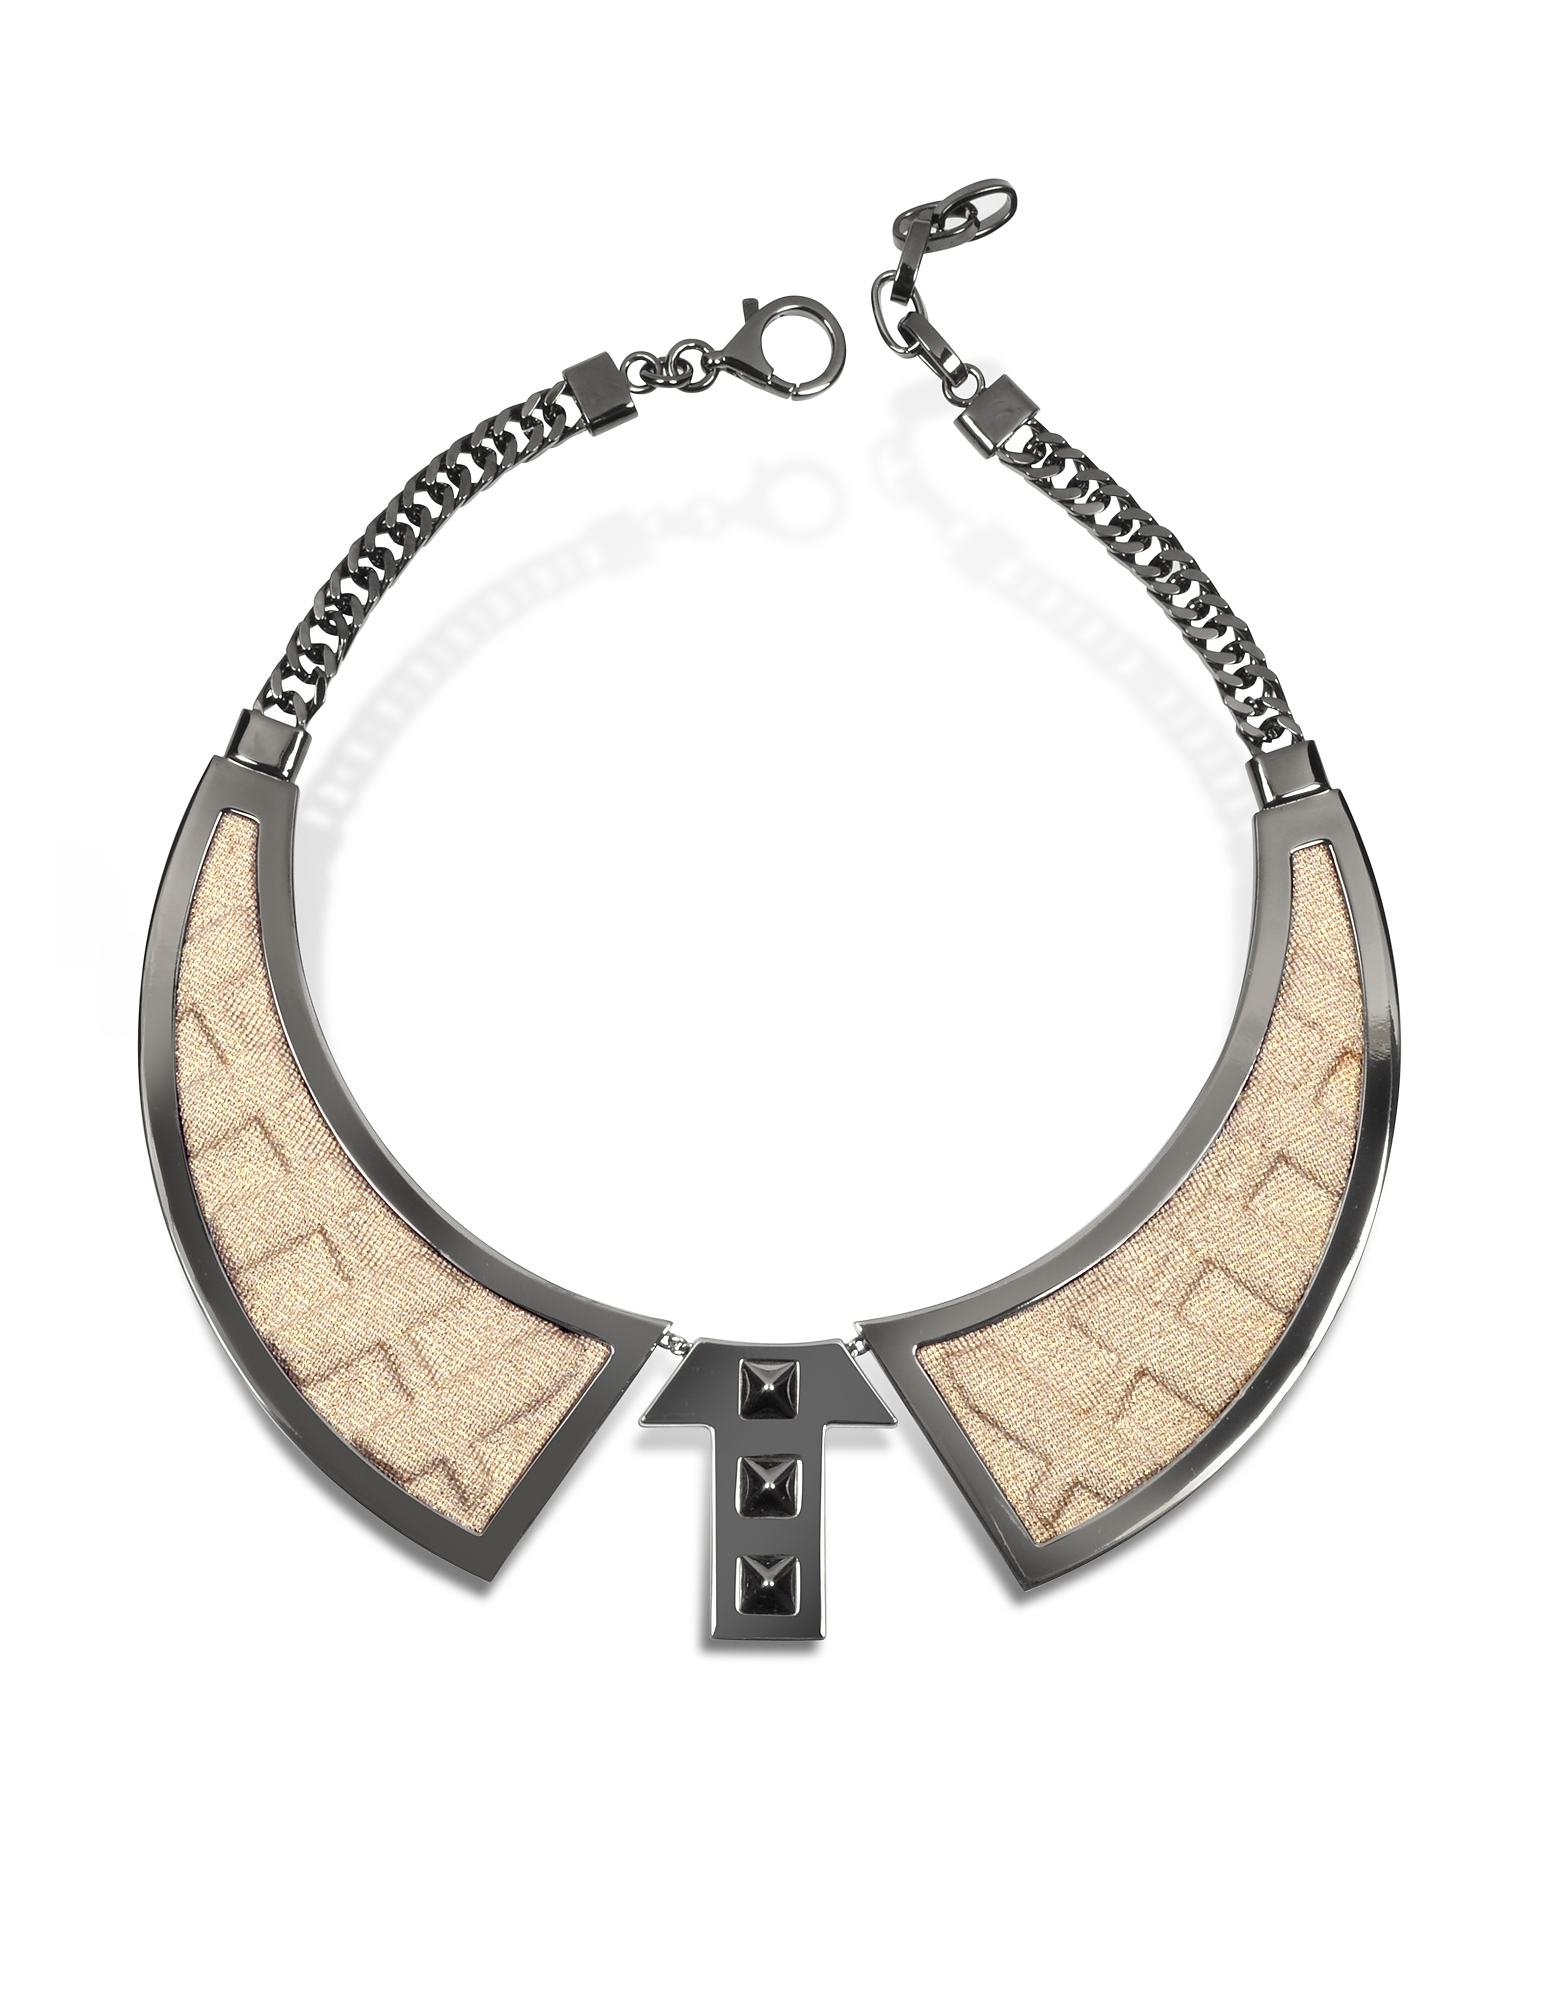 Avril 8790 Necklaces, Bavero Contemporaneo Ruthenium Plated Brass and Golden Viscose Necklace